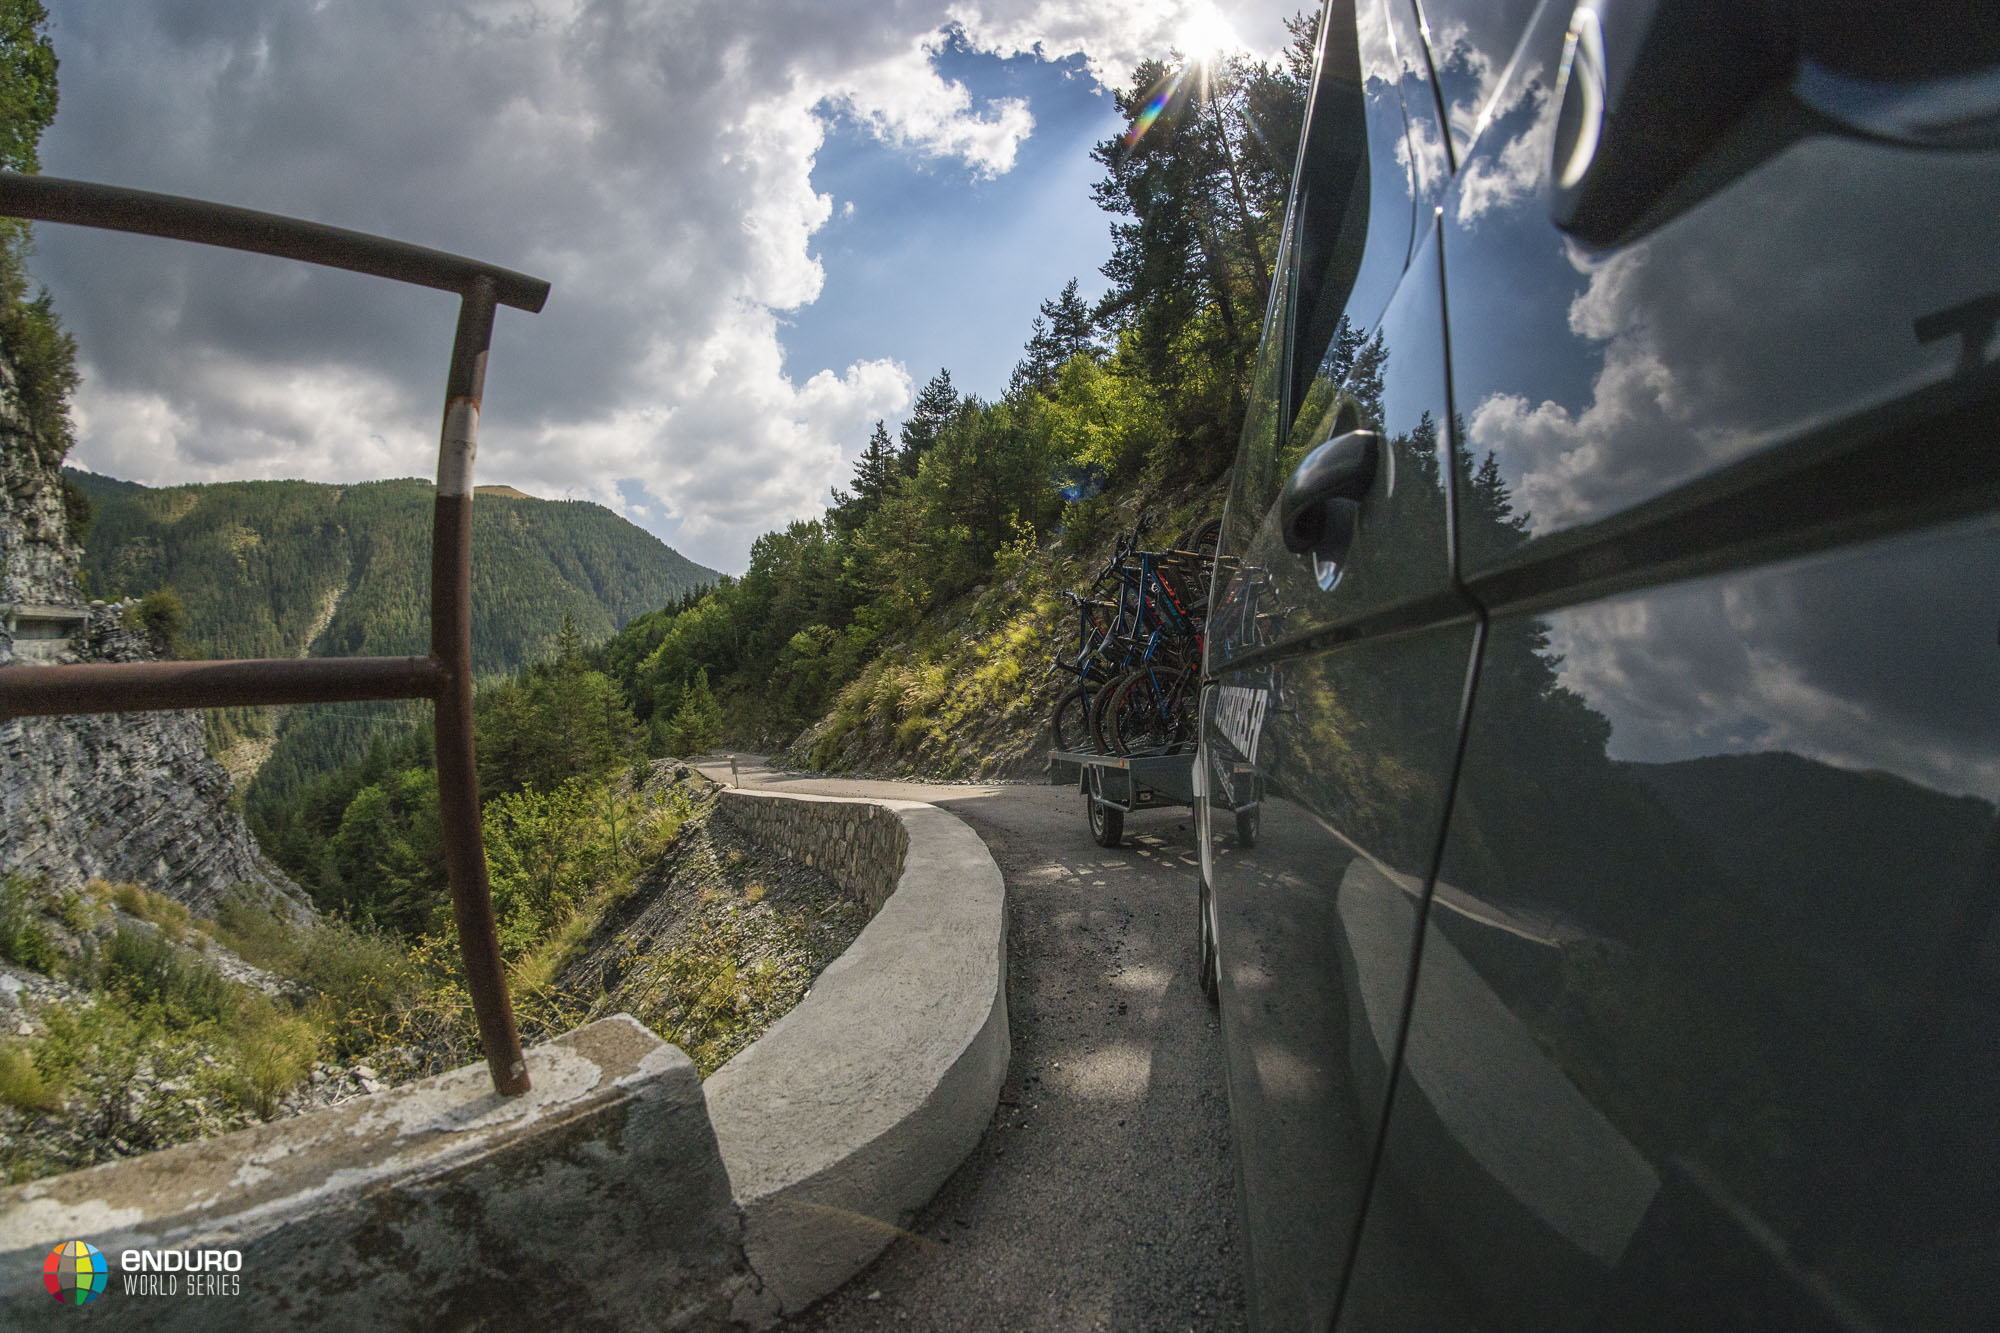 To cover plenty of trails we shuttled as far as possible to the top of stage 3, it involved some dicey moments!